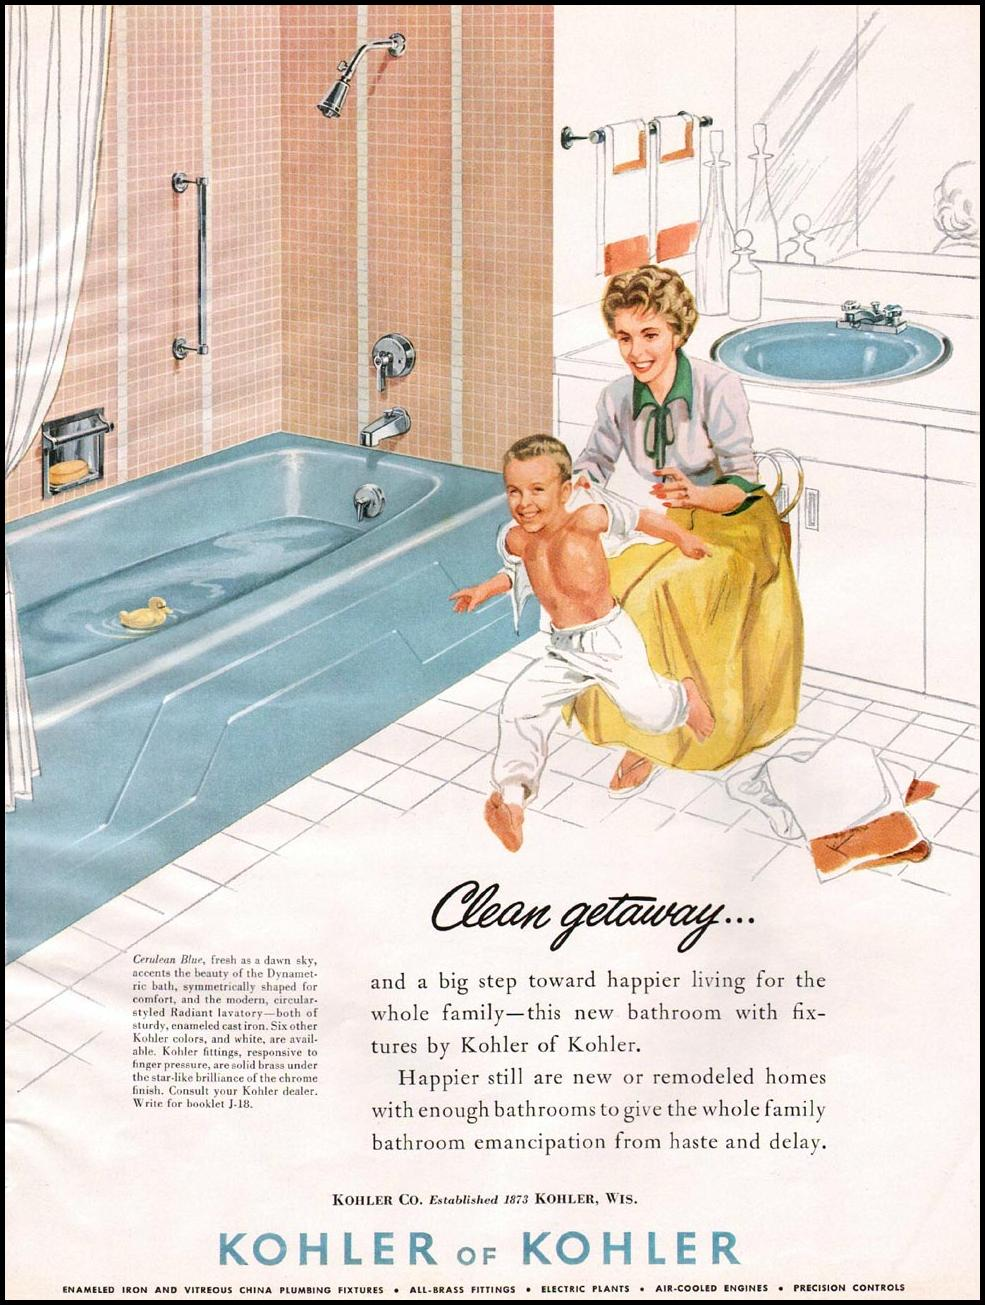 Great id 1234663240 advertiser kohler co product kohler bathroom fixtures  985 x 1305 · 199 kB · jpeg